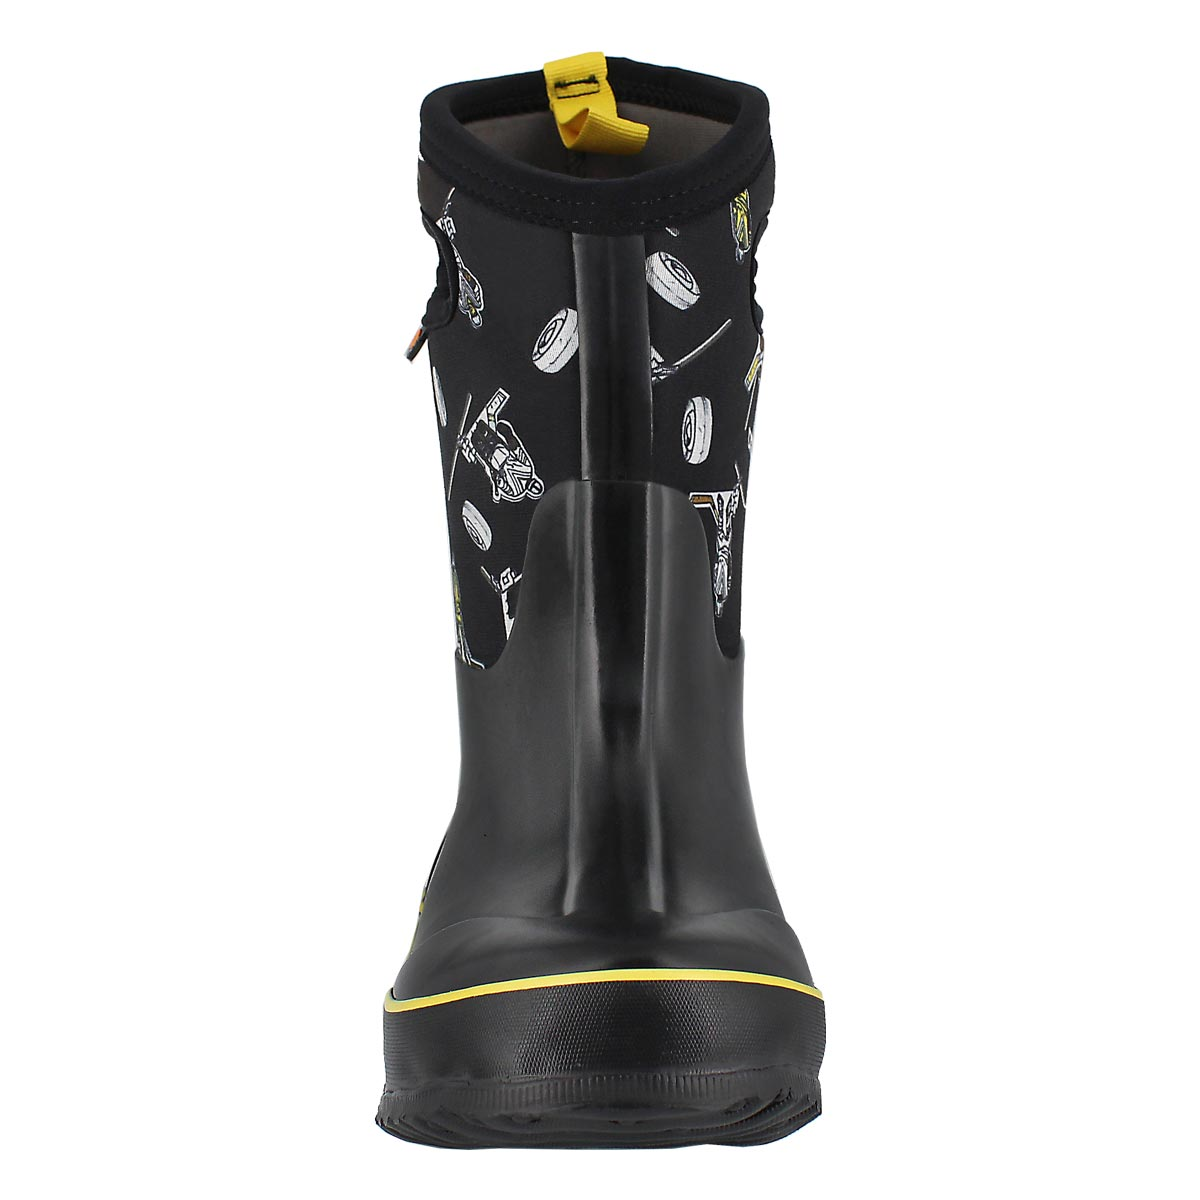 Bys Classic Hockey blk wtpf winter boot